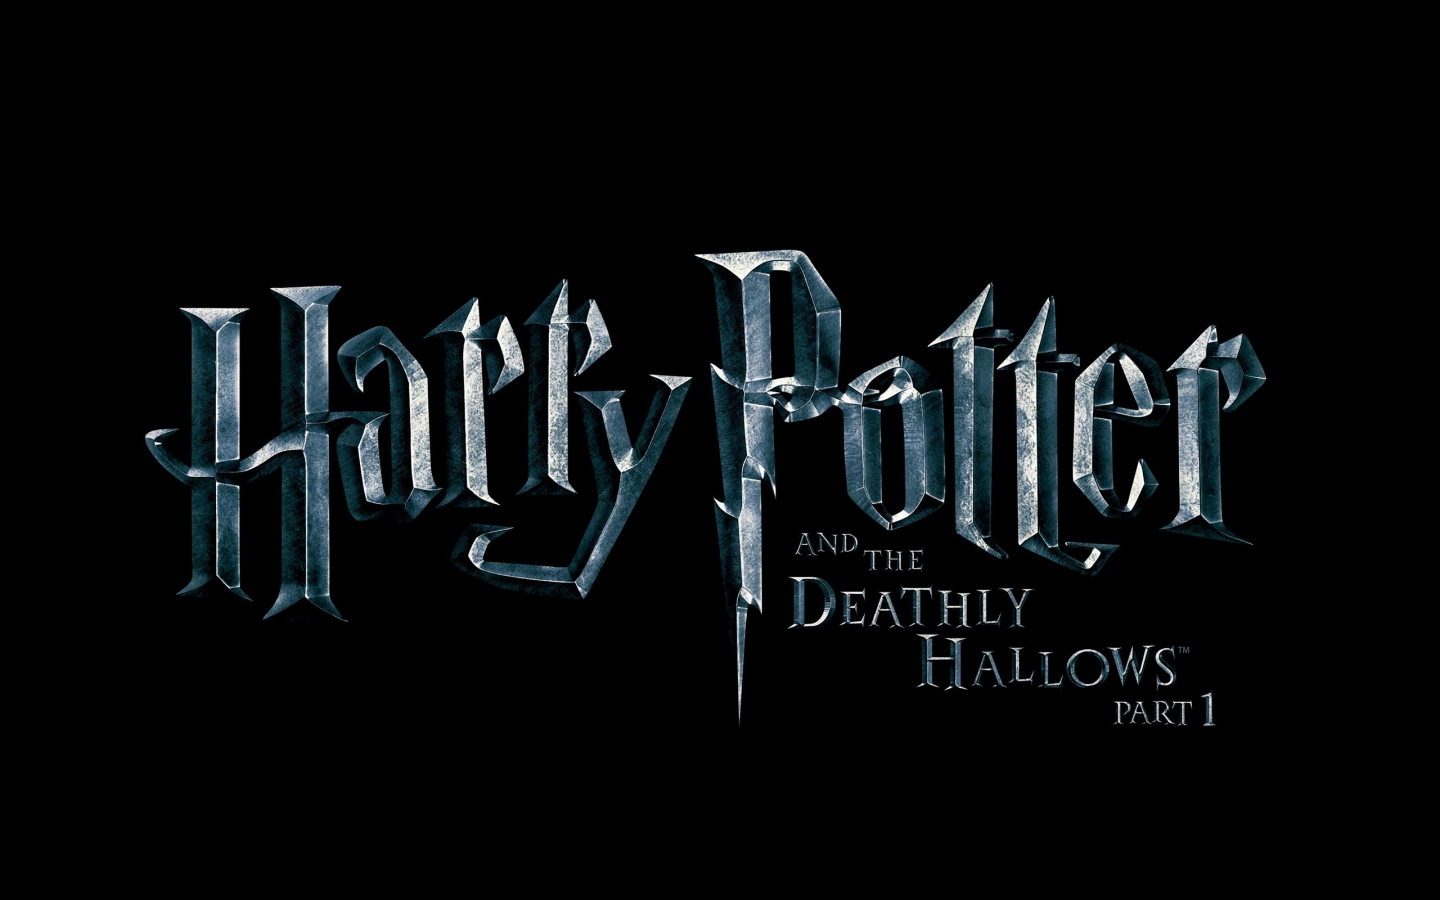 Harry Potter And The Deathly Hallows Hd Wallpaper Wallpaperfx